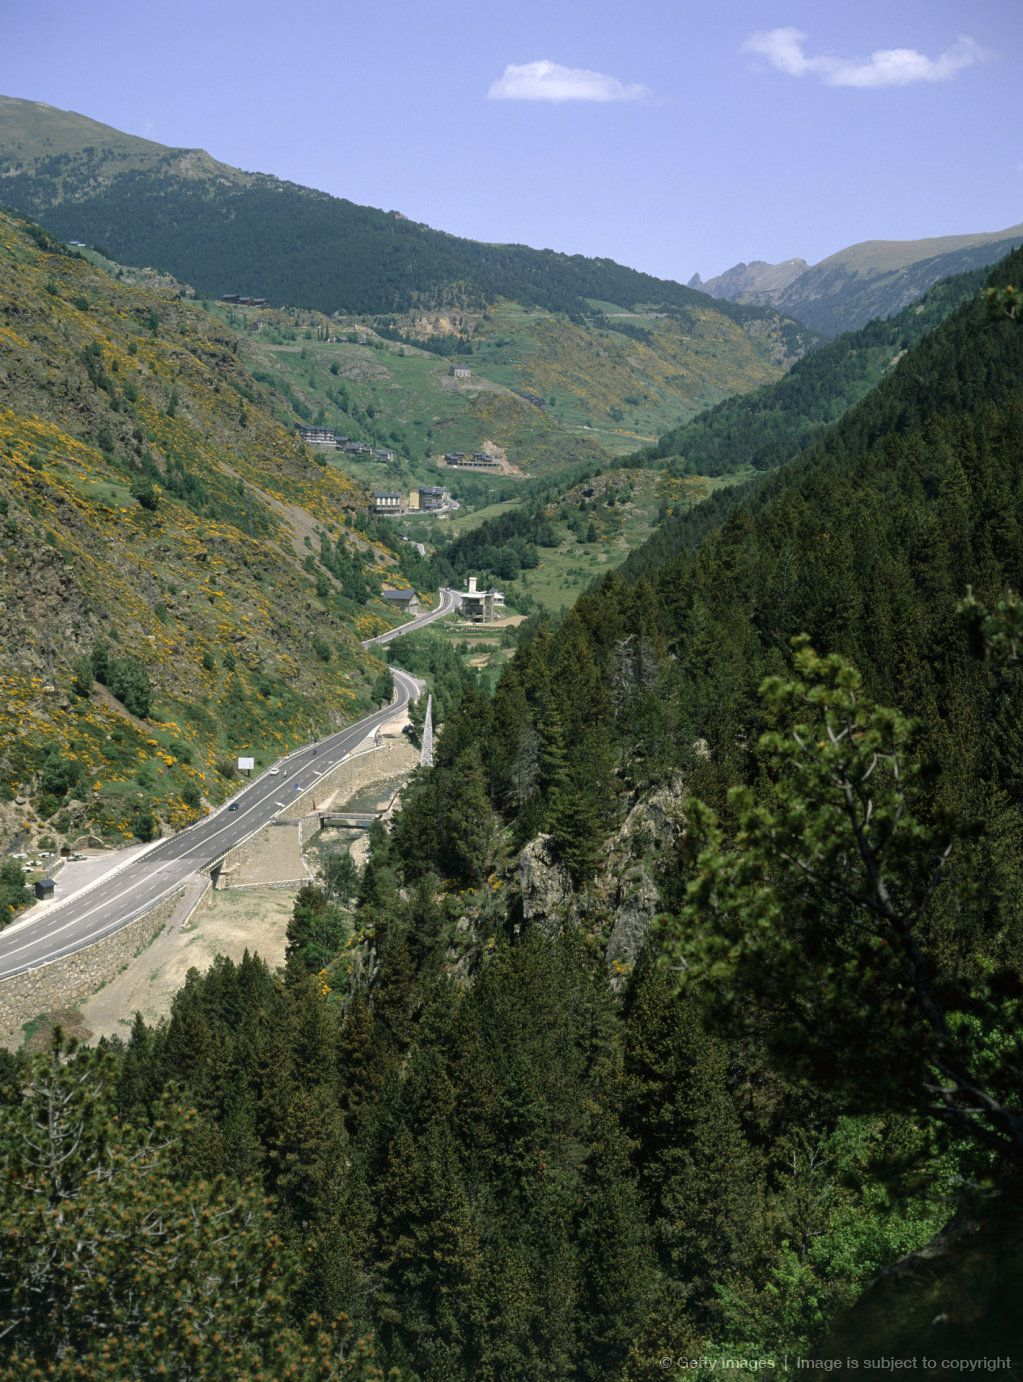 Andorra Is A Small Landlocked Principality Or Country In Southwestern Europe Bordered By Spain And France It Is A Tax Haven And Popular Tourist Destination